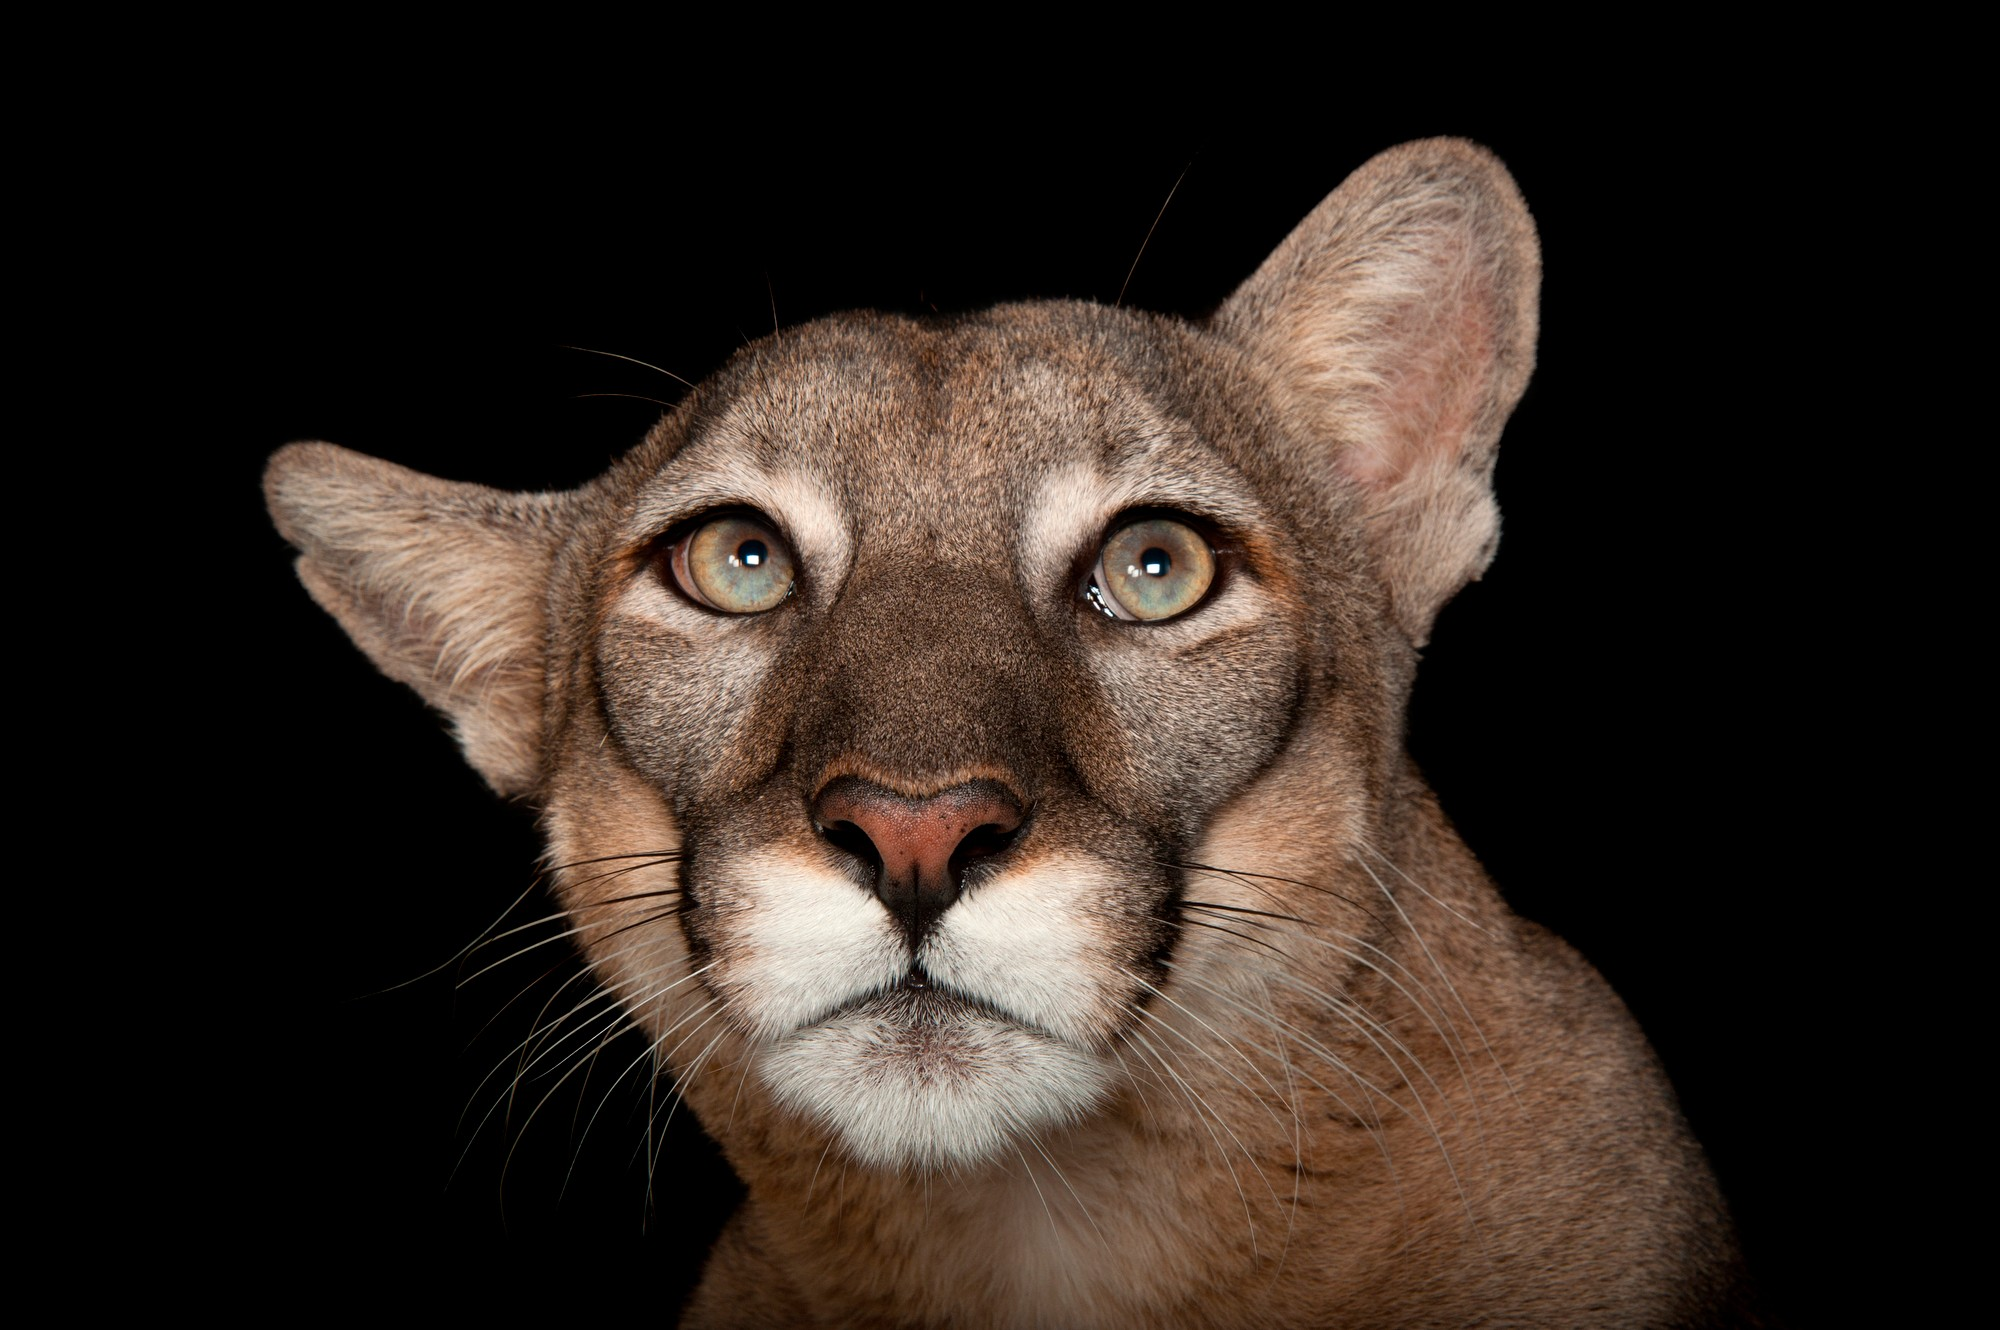 Photo: A Florida panther (Puma concolor coryi) named Lucy at Tampa's Lowry Park Zoo.